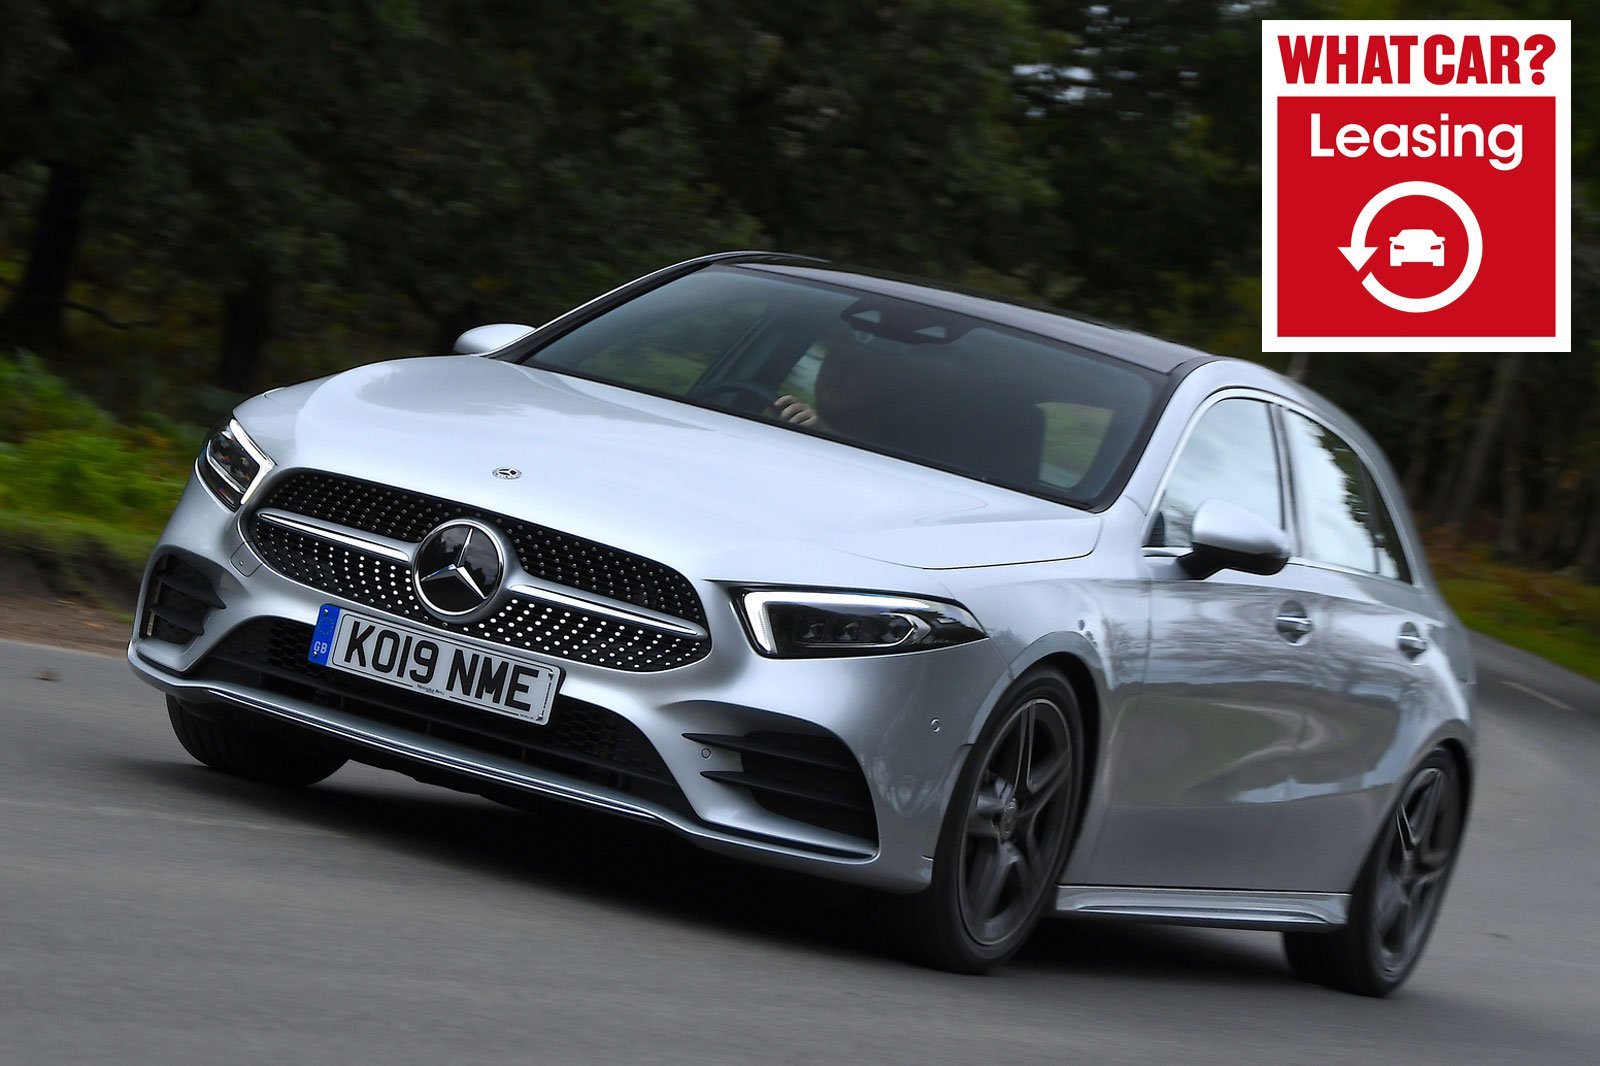 Mercedes A-Class with What Car? Leasing logo